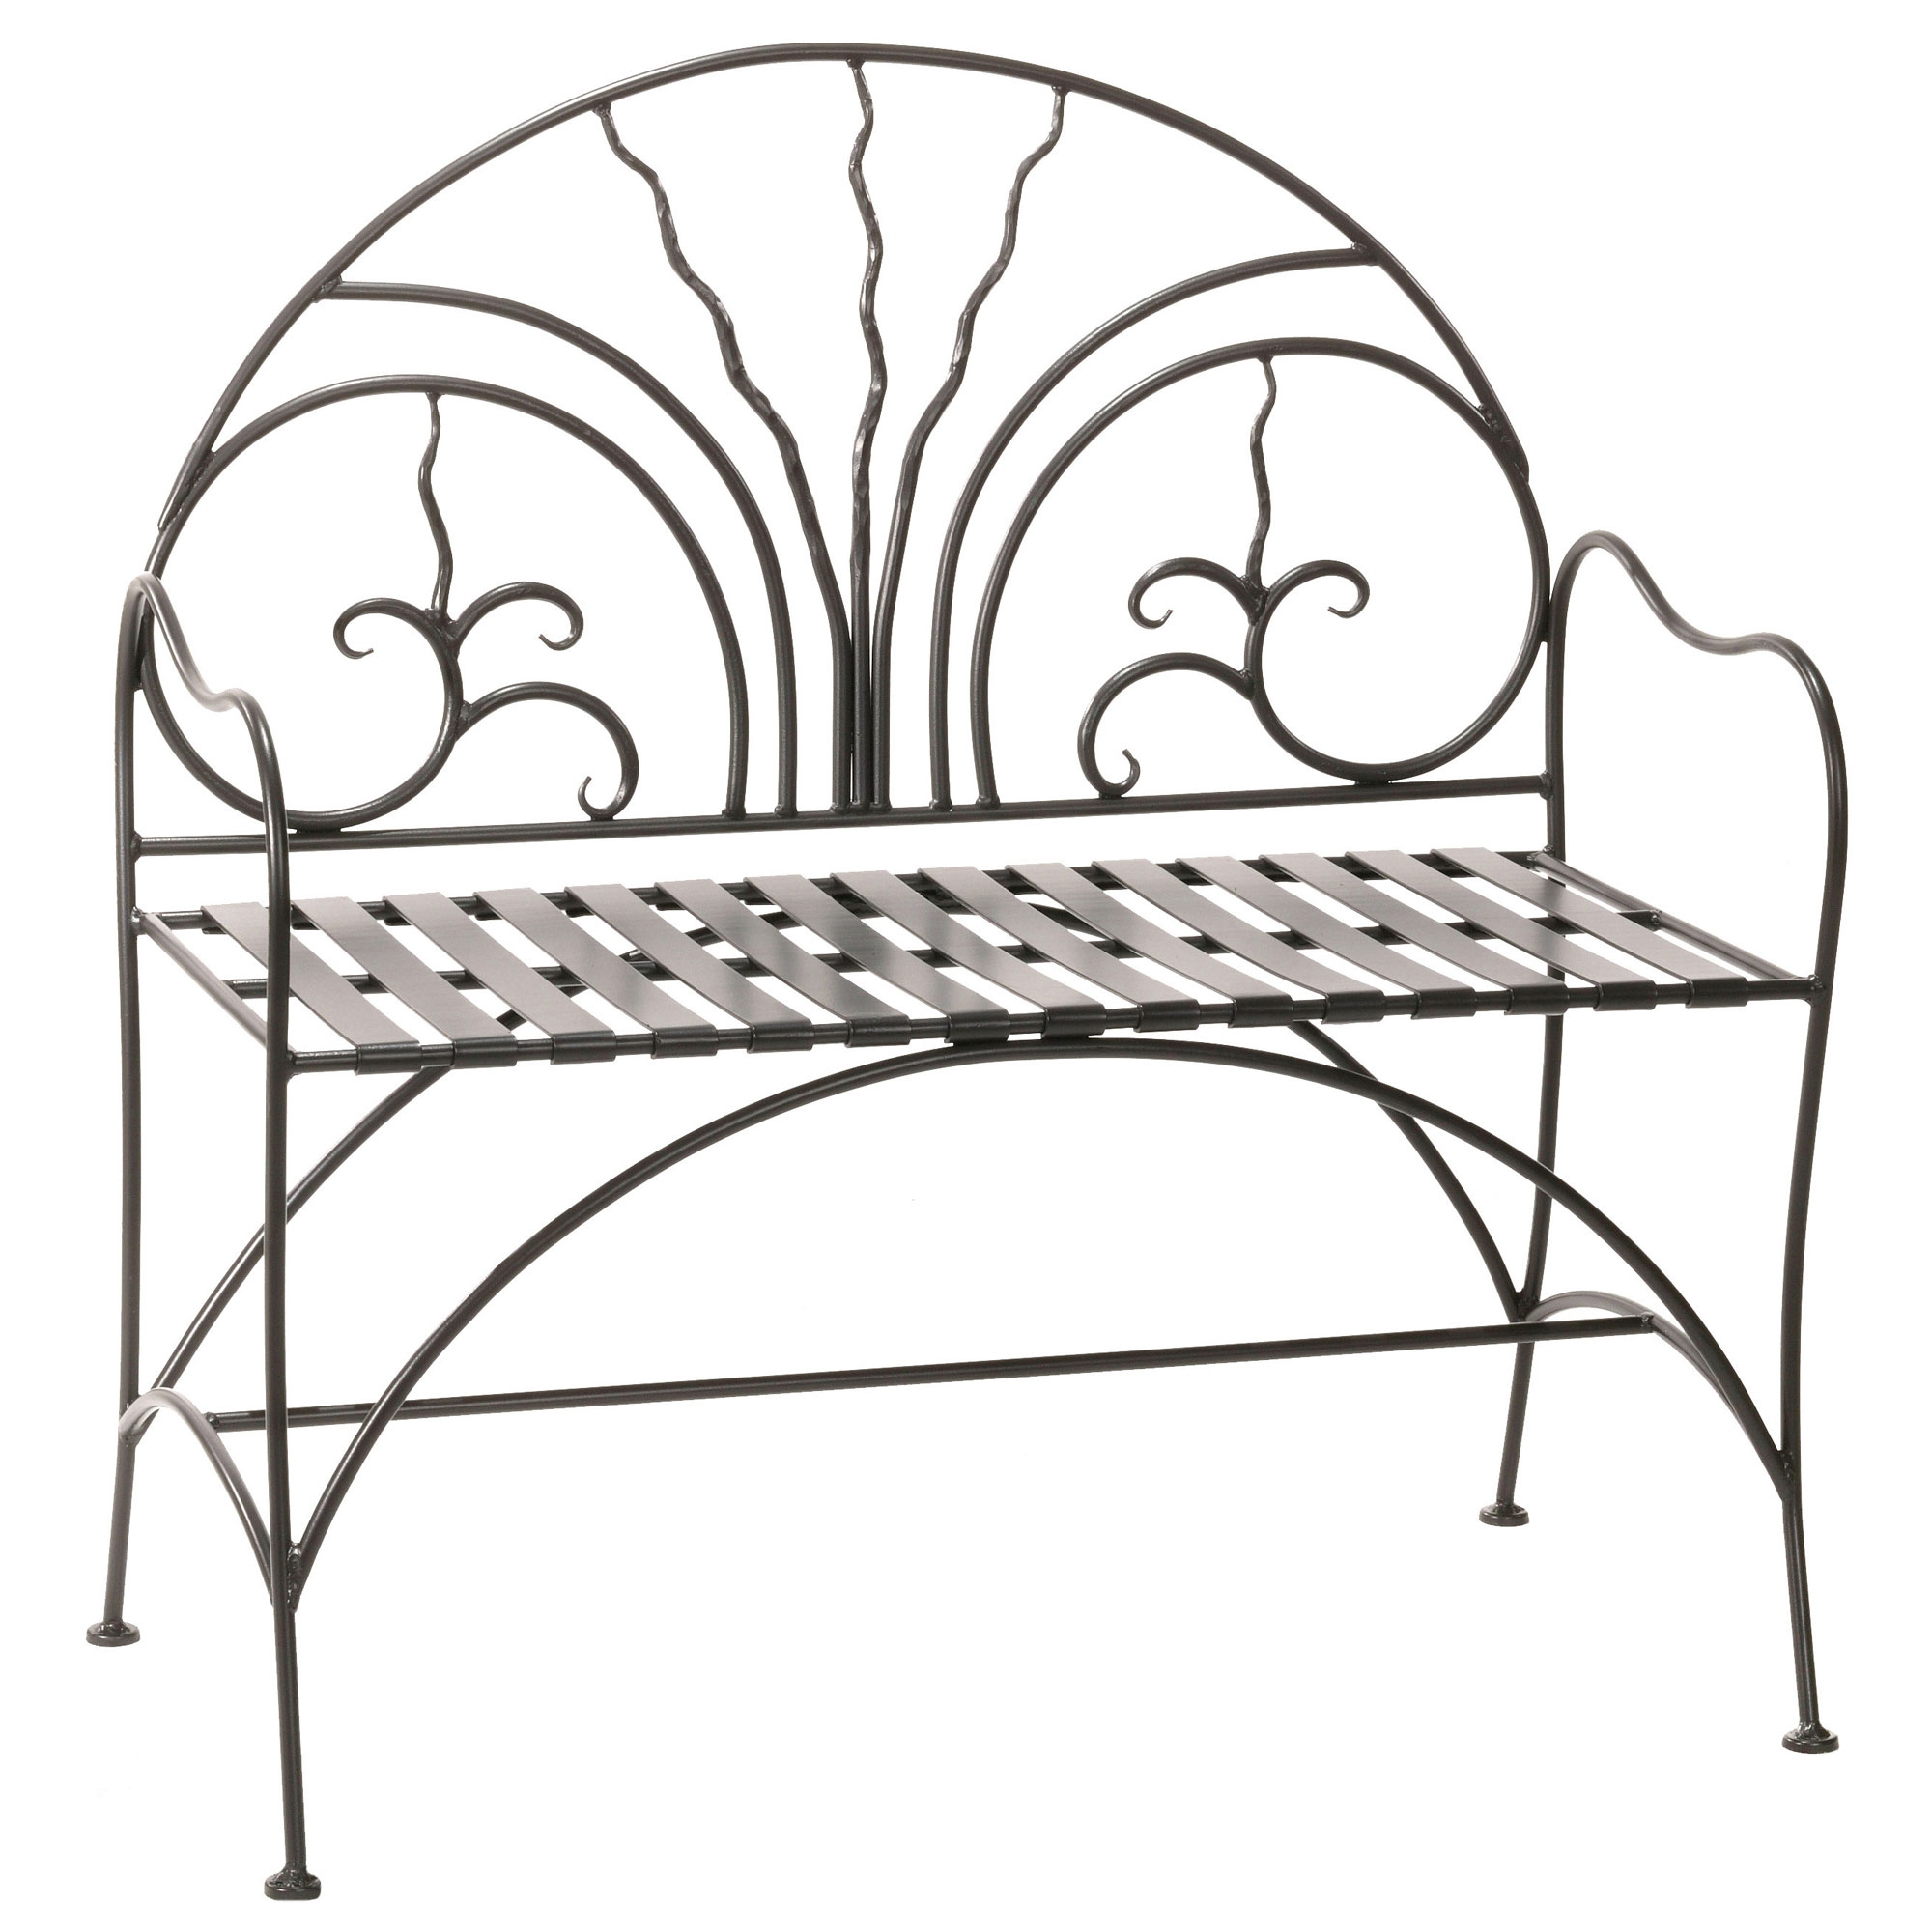 Stupendous Wrought Iron 40 Inch Courtyard Bench Ibusinesslaw Wood Chair Design Ideas Ibusinesslaworg